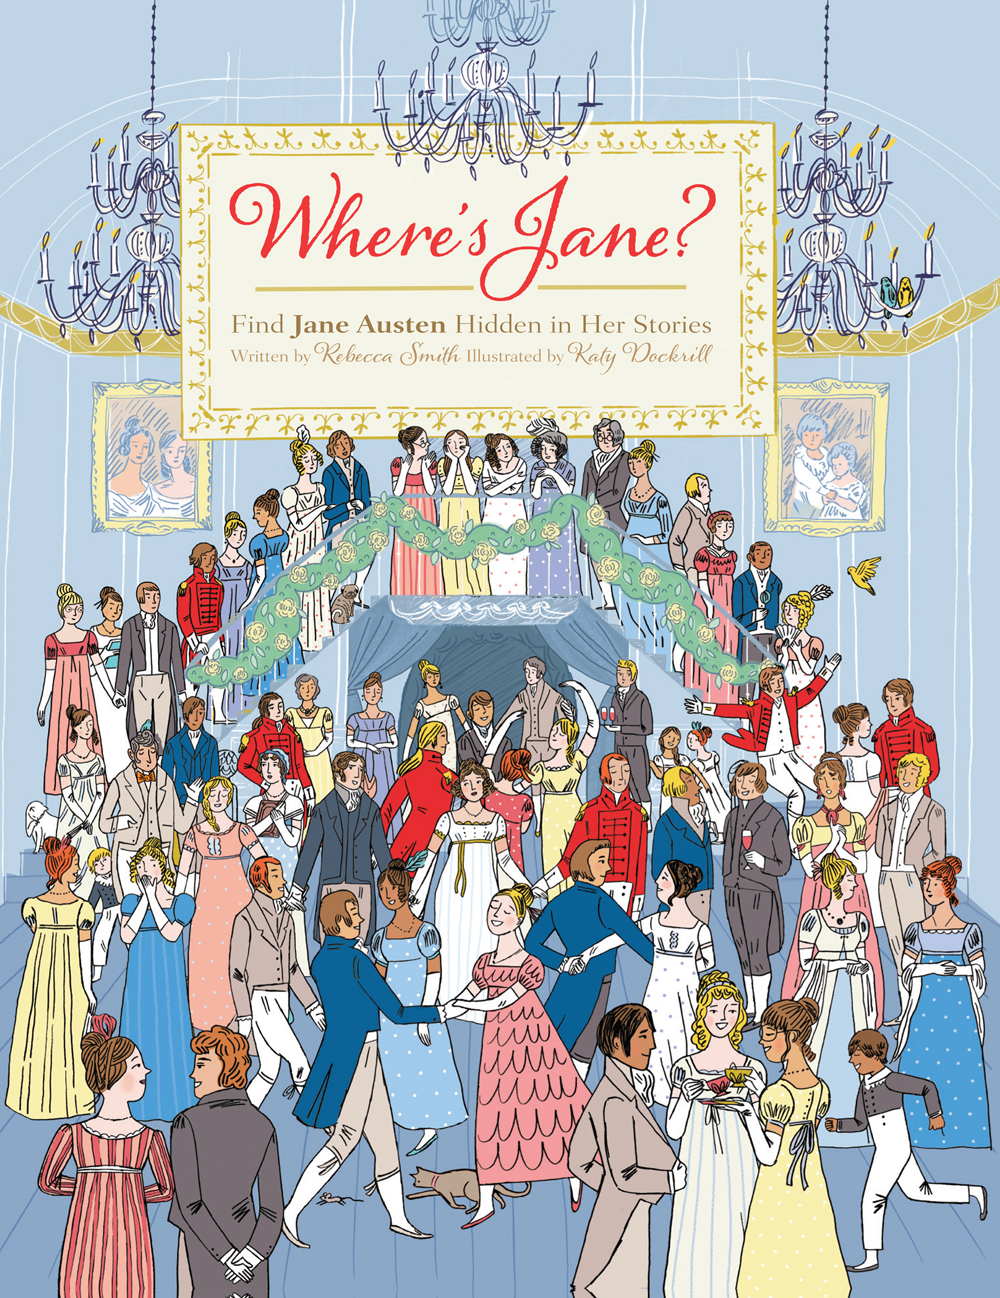 The Ultimate Childrens Book For A Jane Austen Fan Illustrated By Katy Dockrill